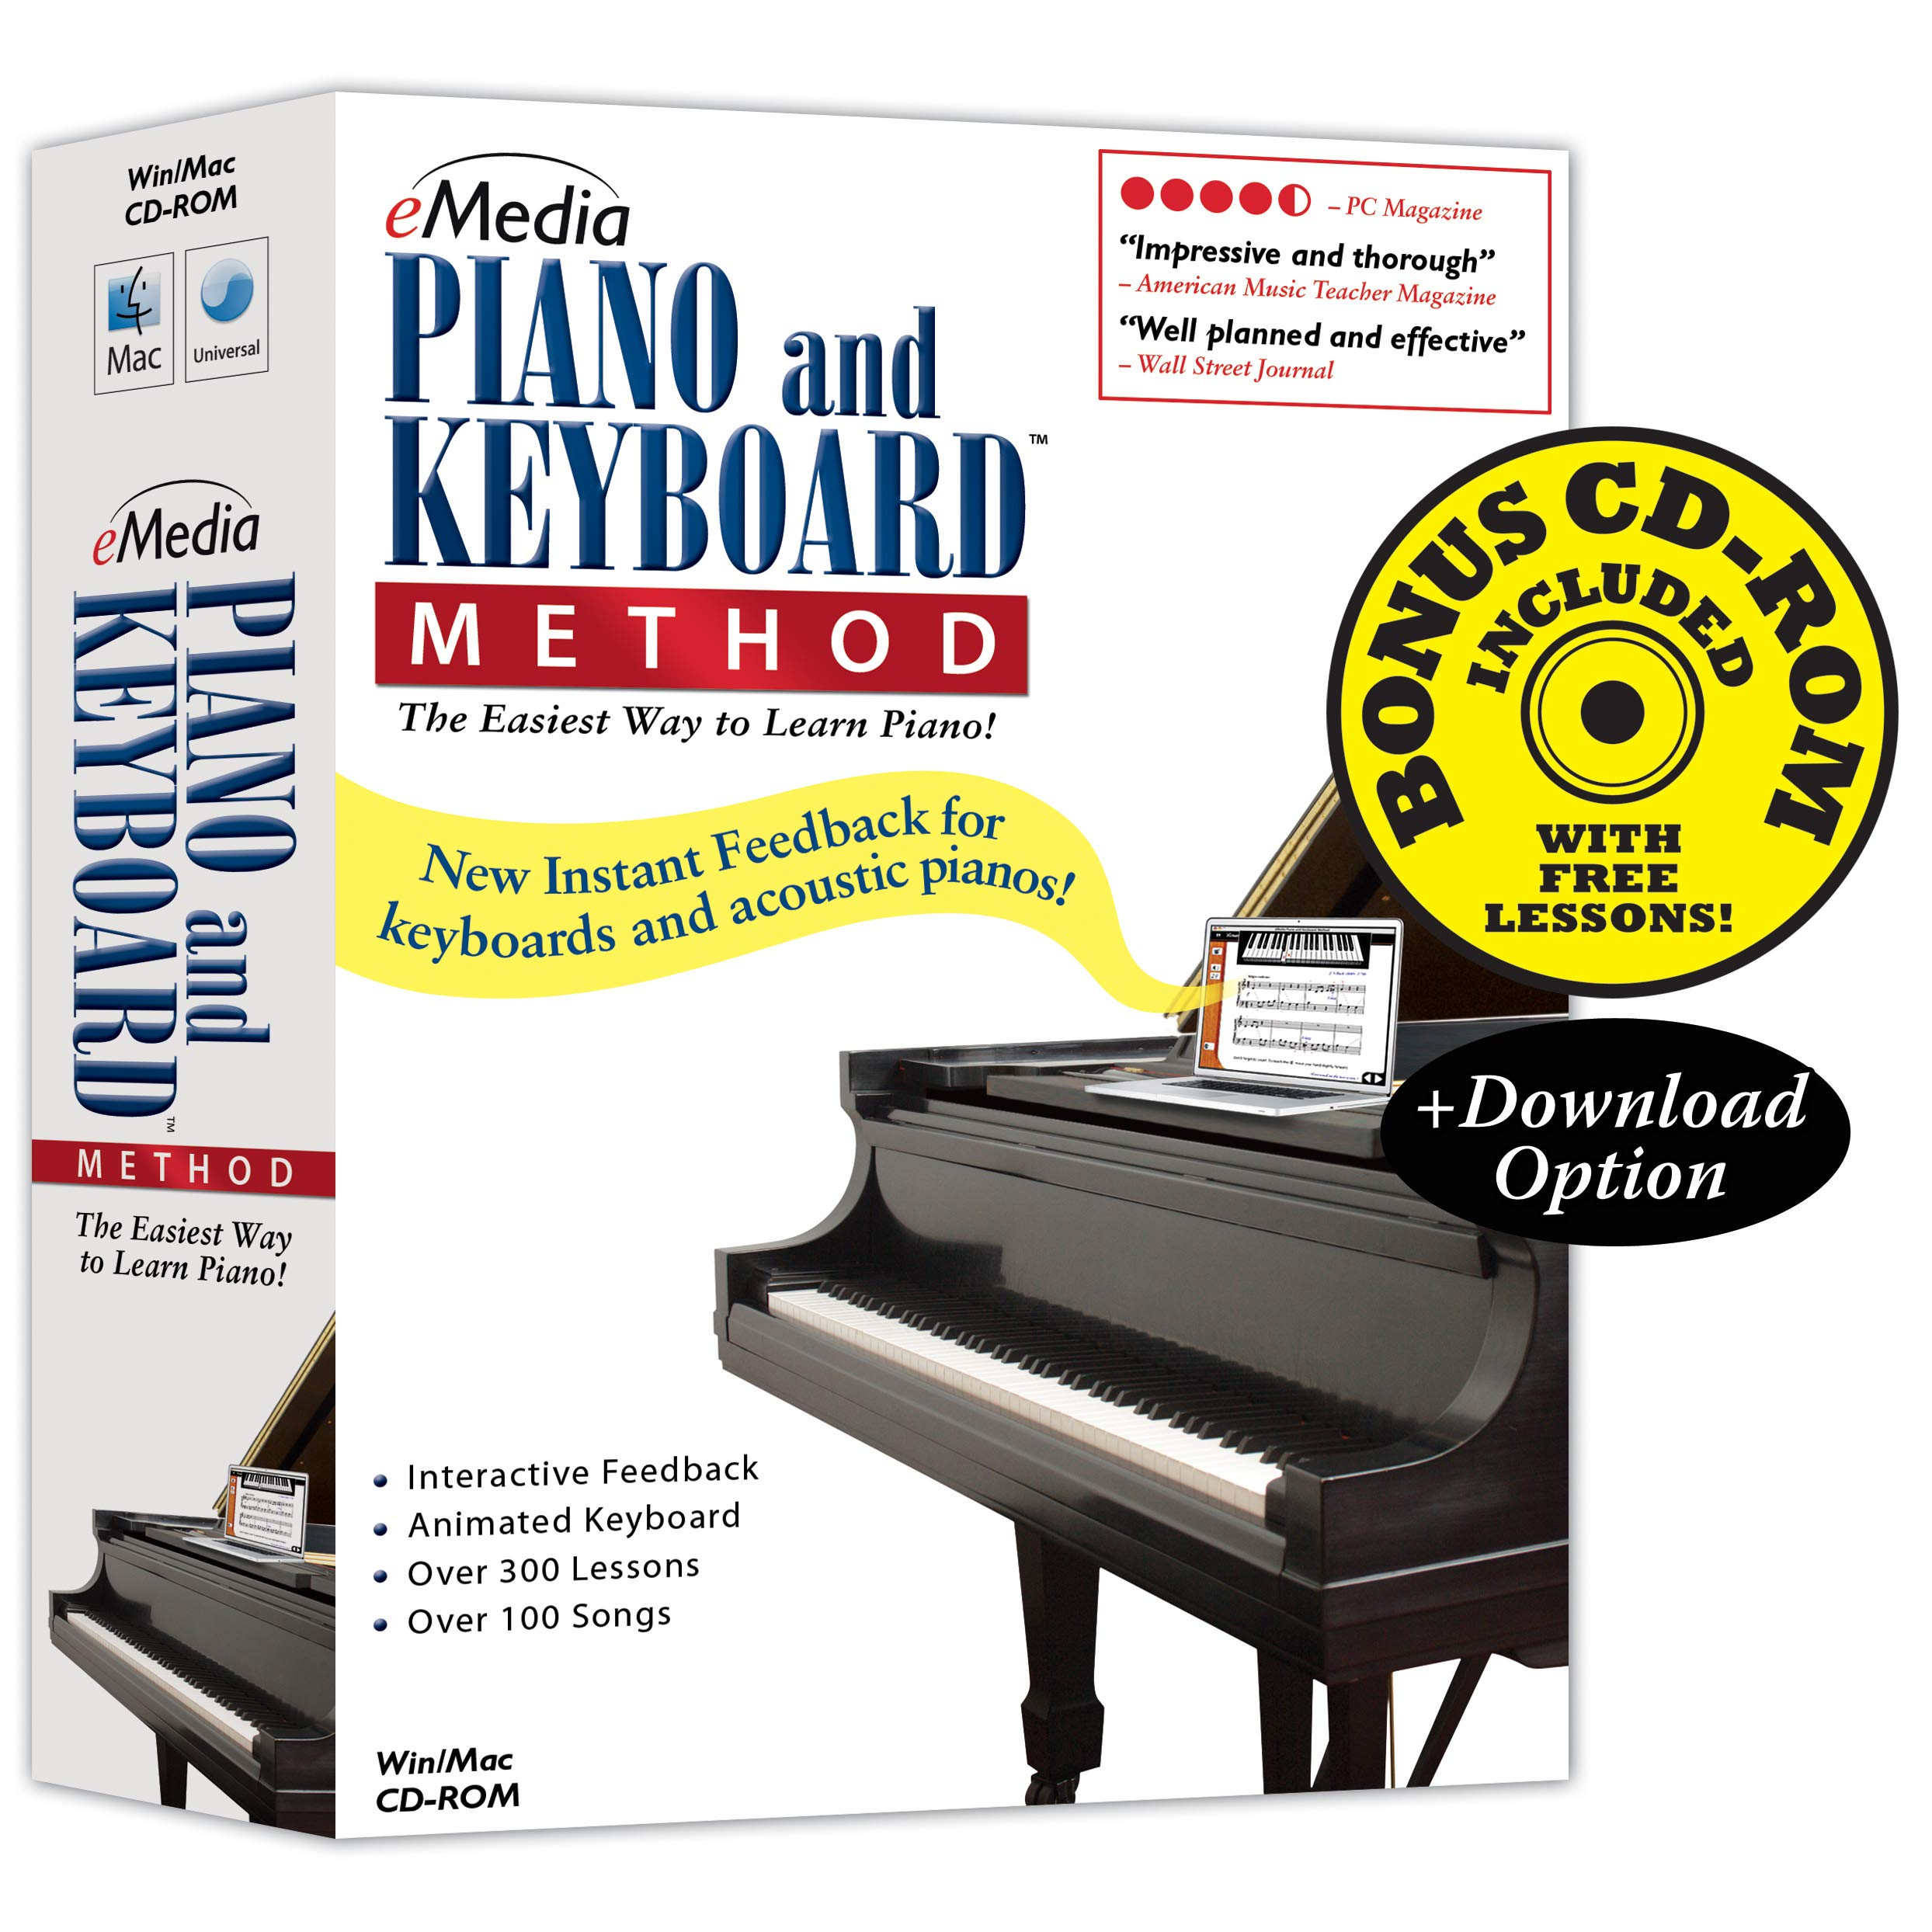 eMedia Piano and Keyboard Method v3 - Amazon Exclusive Edition with 150+ Additional Lessons by eMedia